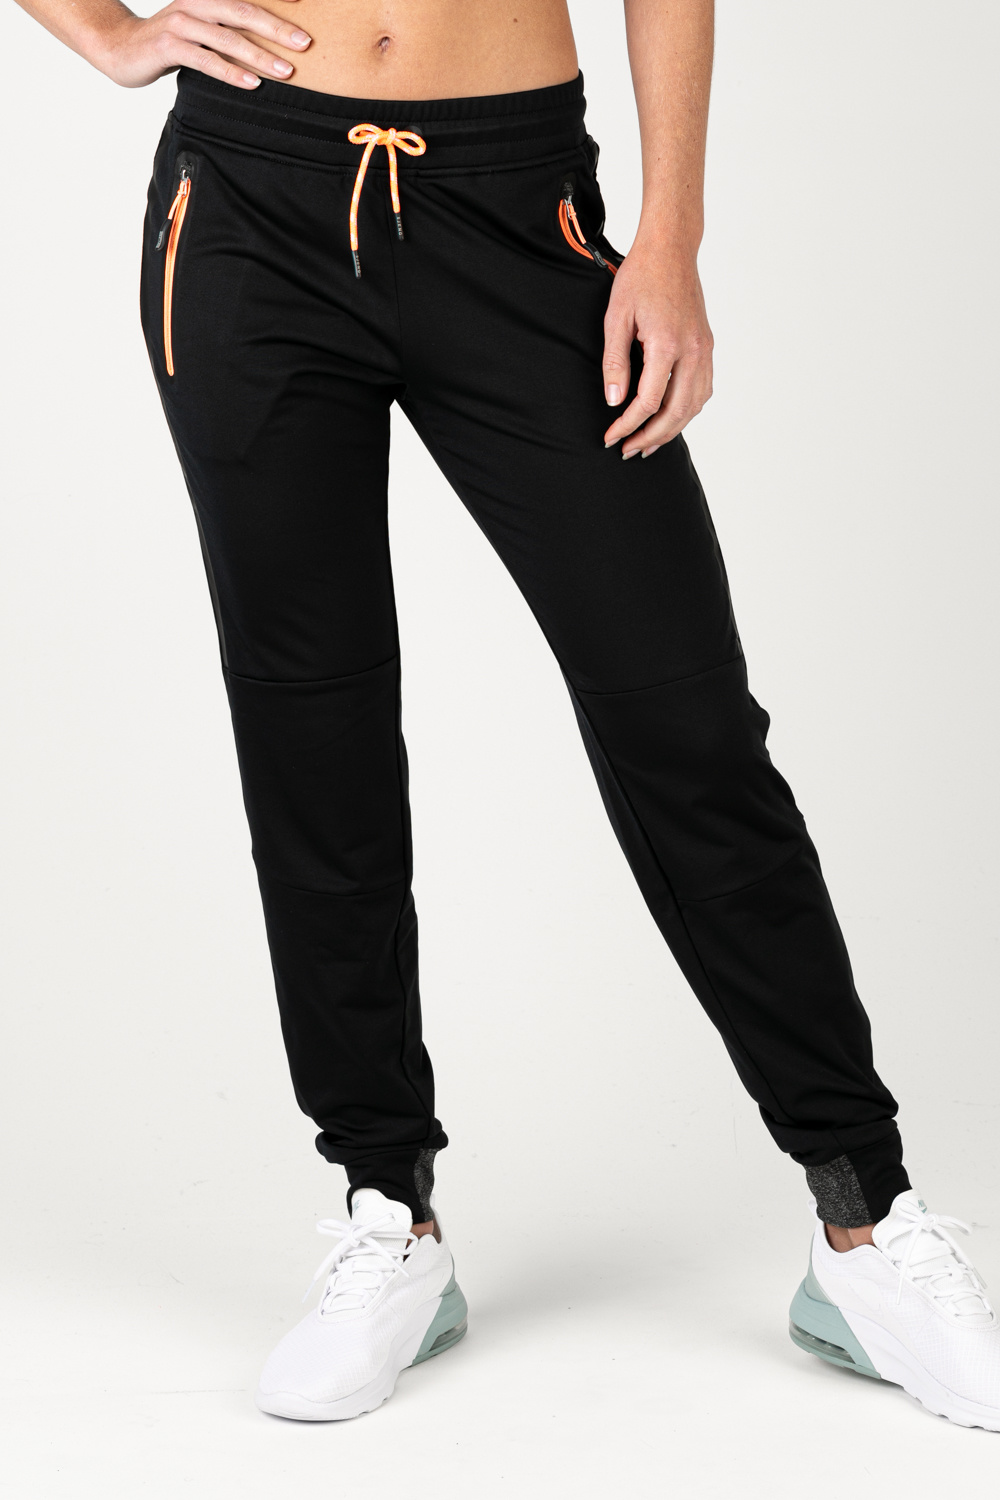 Sjeng Sports SS LADY PANT NADINE